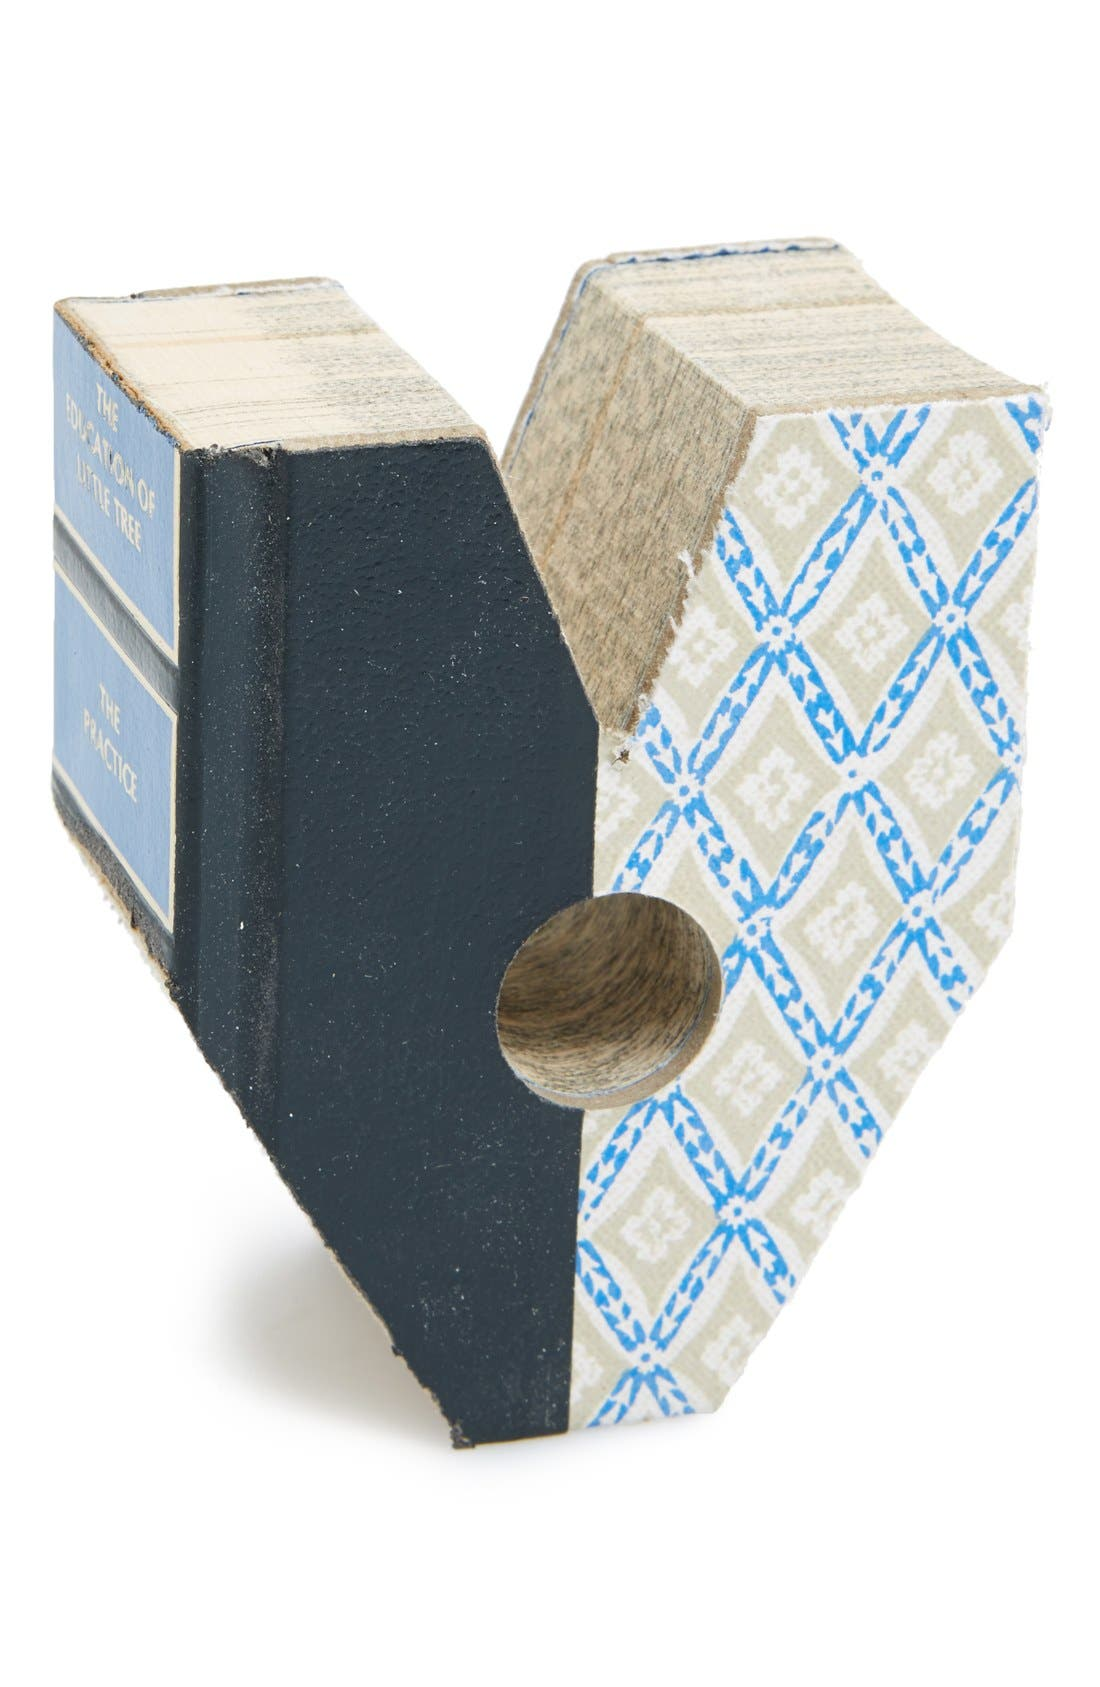 'One of a Kind Letter' Hand Carved Recycled Book Shelf Art,                             Alternate thumbnail 2, color,                             960